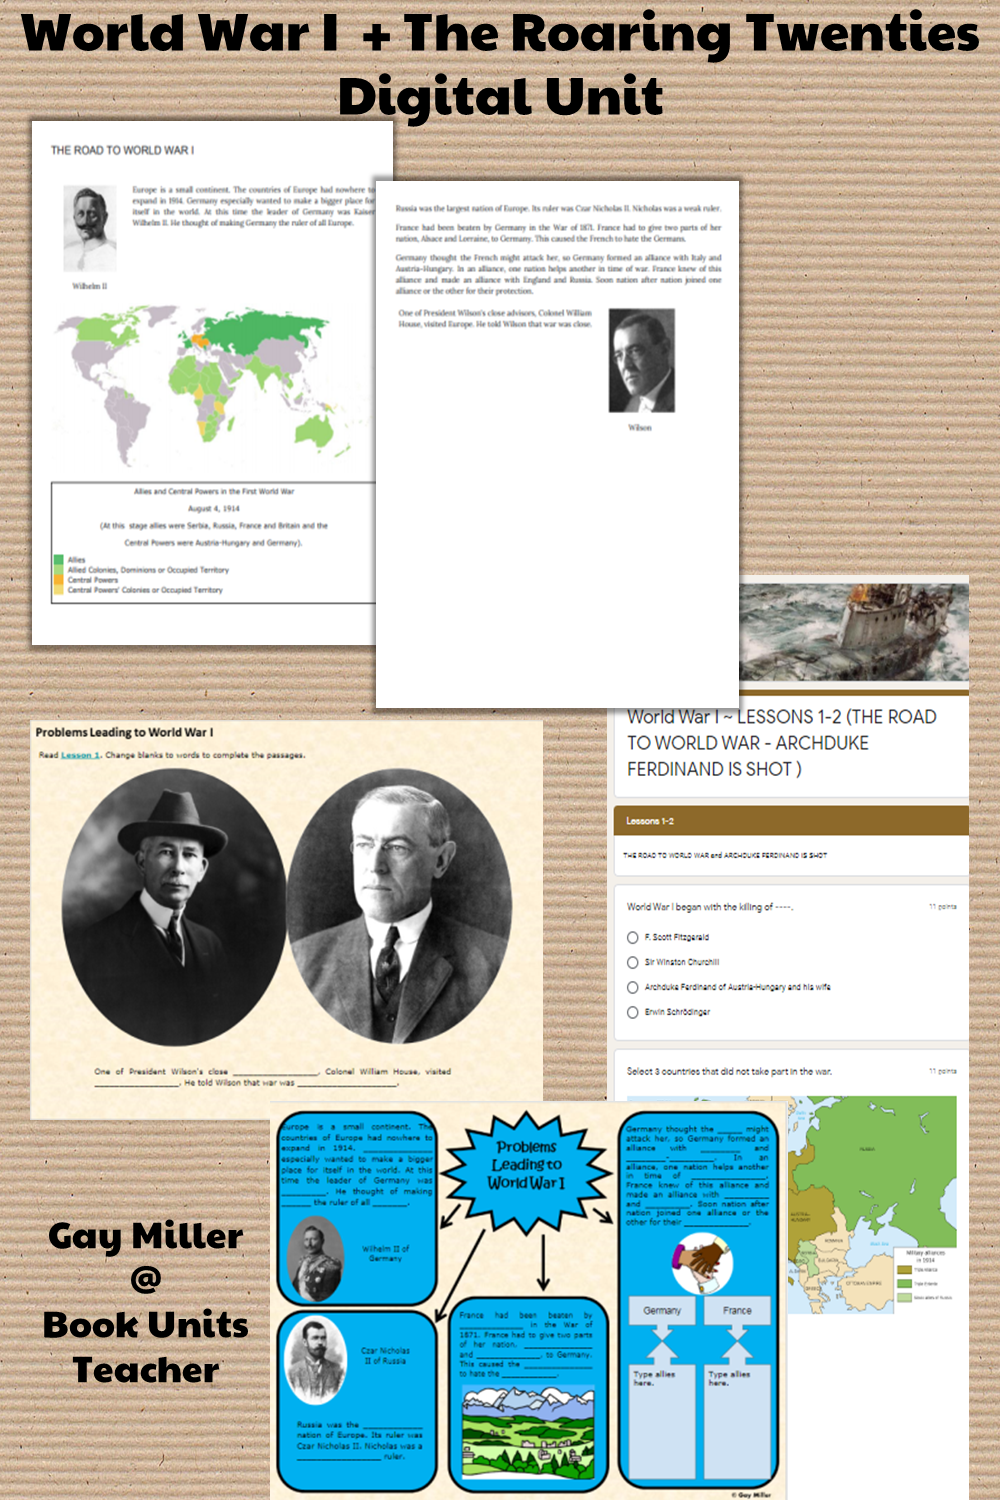 Purchase World War I + Roaring Twenties  Digital Unit on Teachers Pay Teachers. This activity is great for upper elementary including 4th, 5th, and 6th graders.